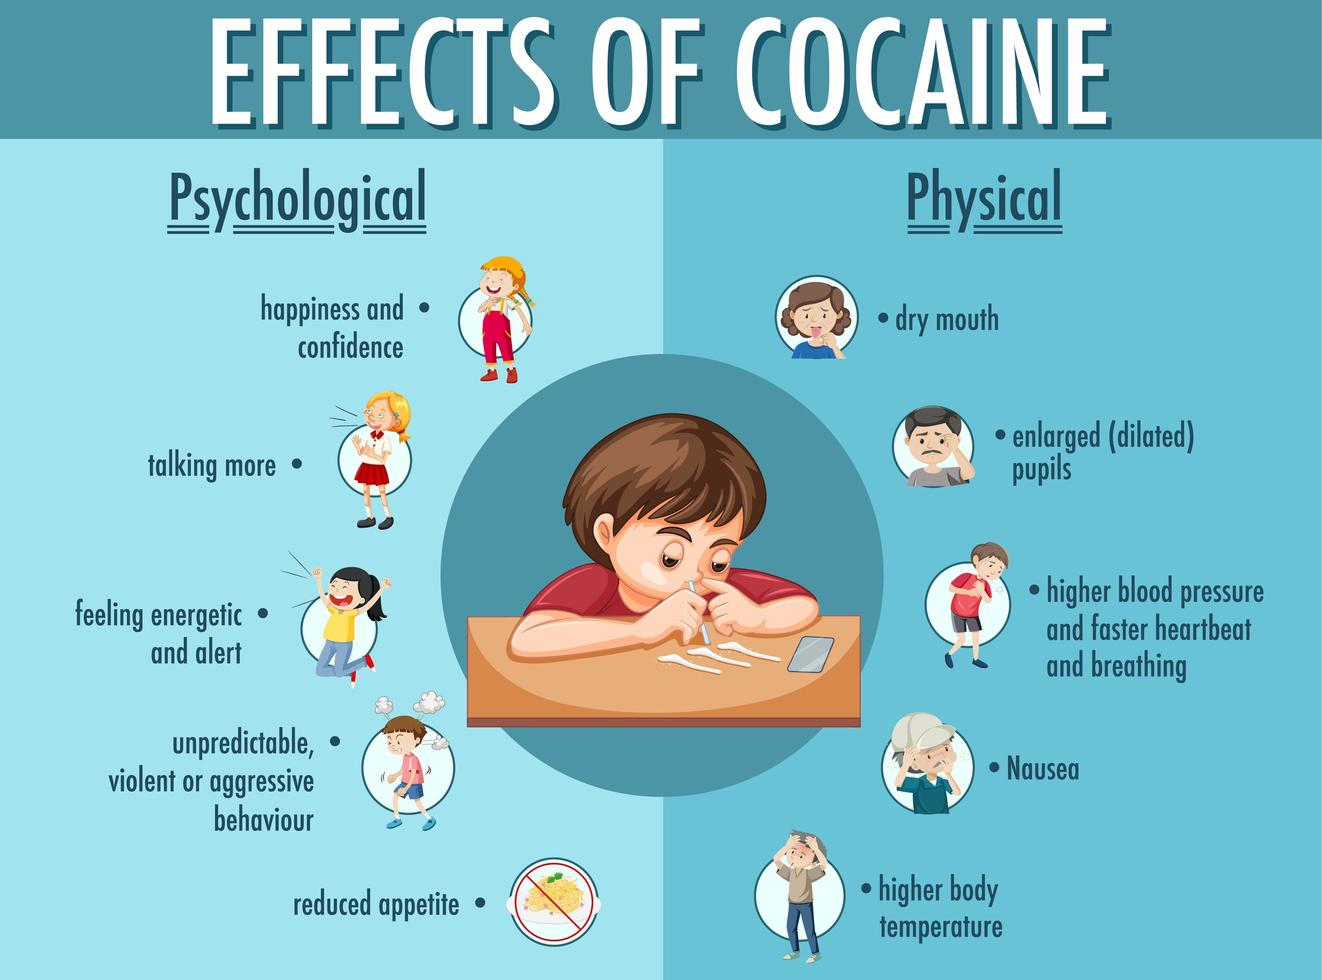 Effects of cocaine information infographic vector